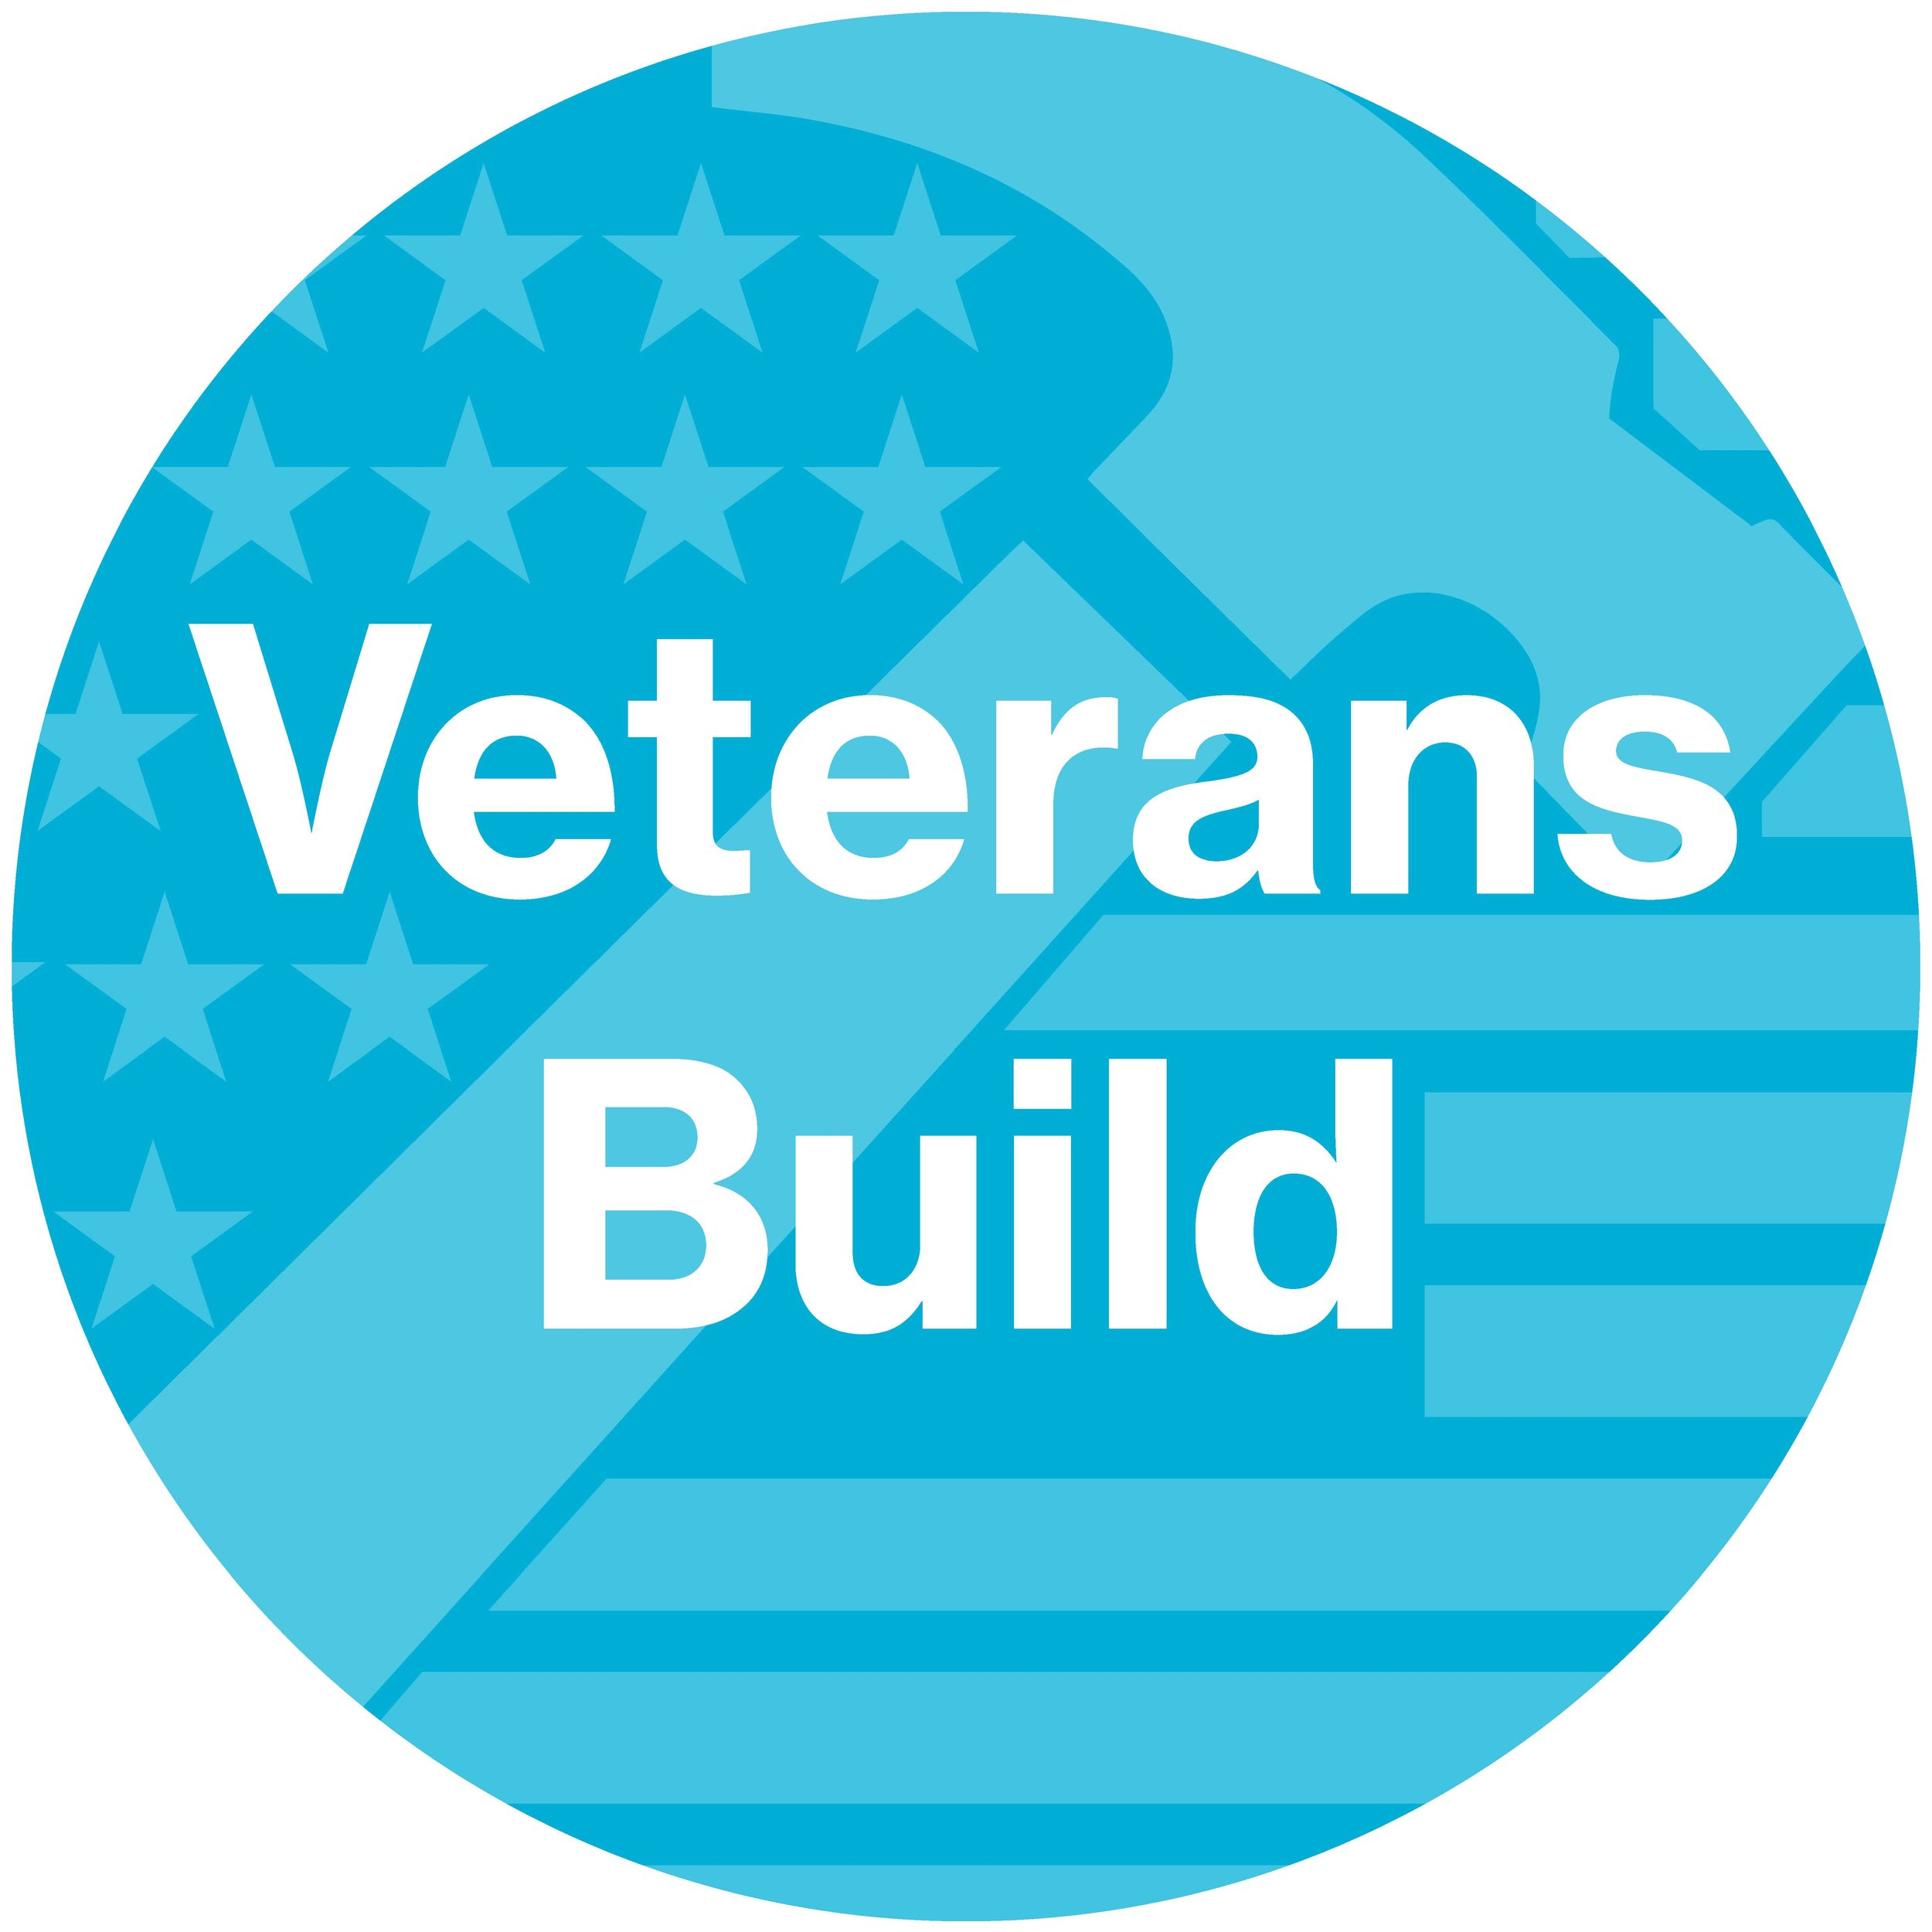 Veterans Build Logo.jpg